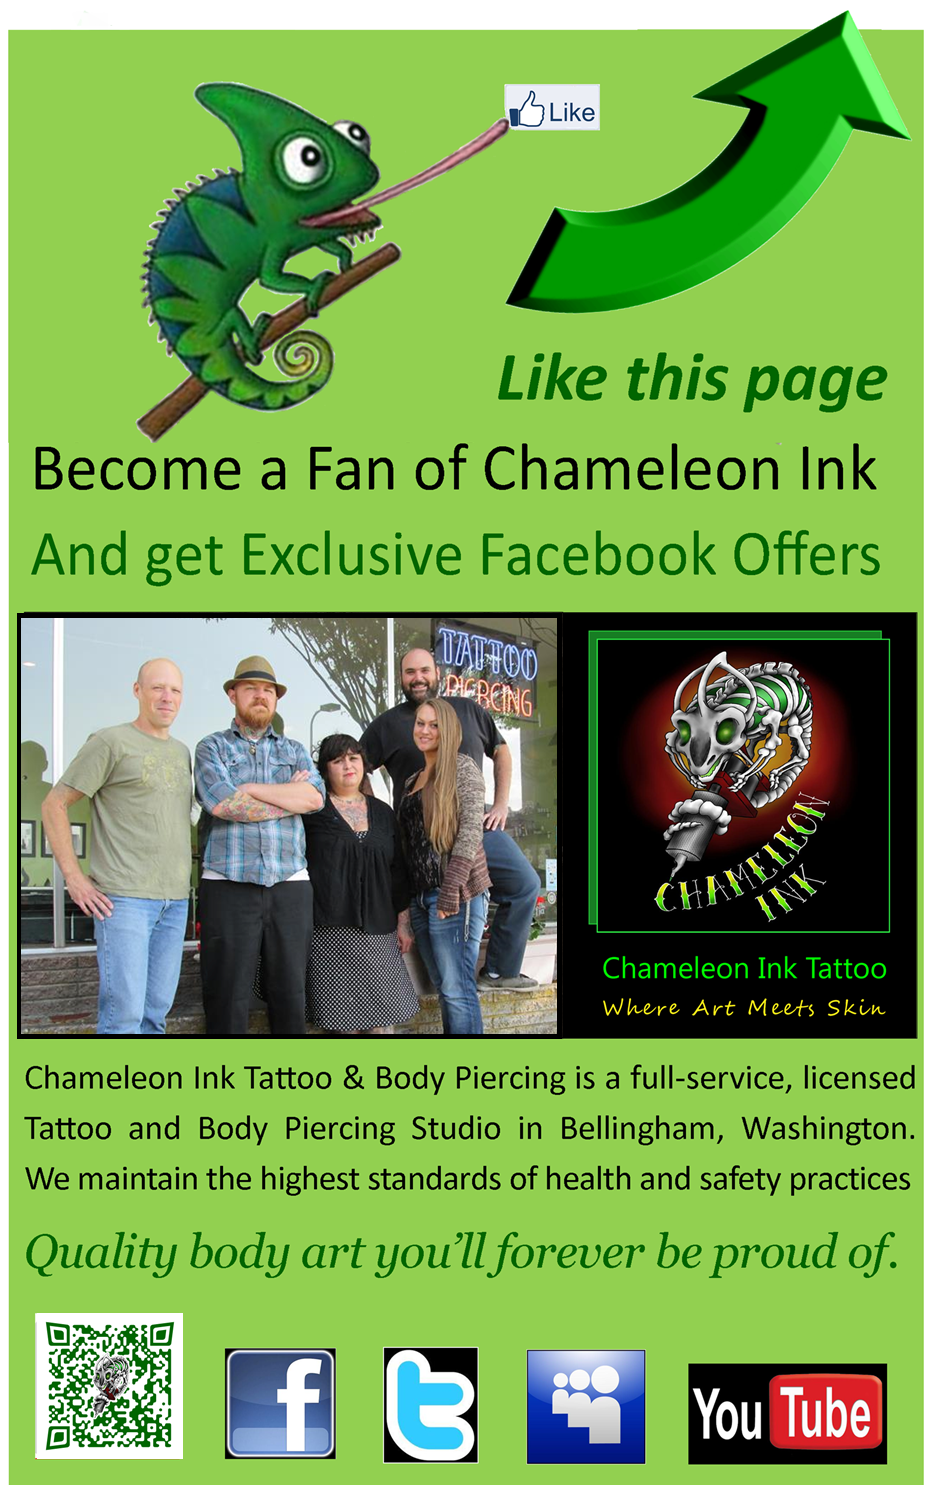 Like Chameleon Ink Tattoo On Facebook For Exclusive Offers